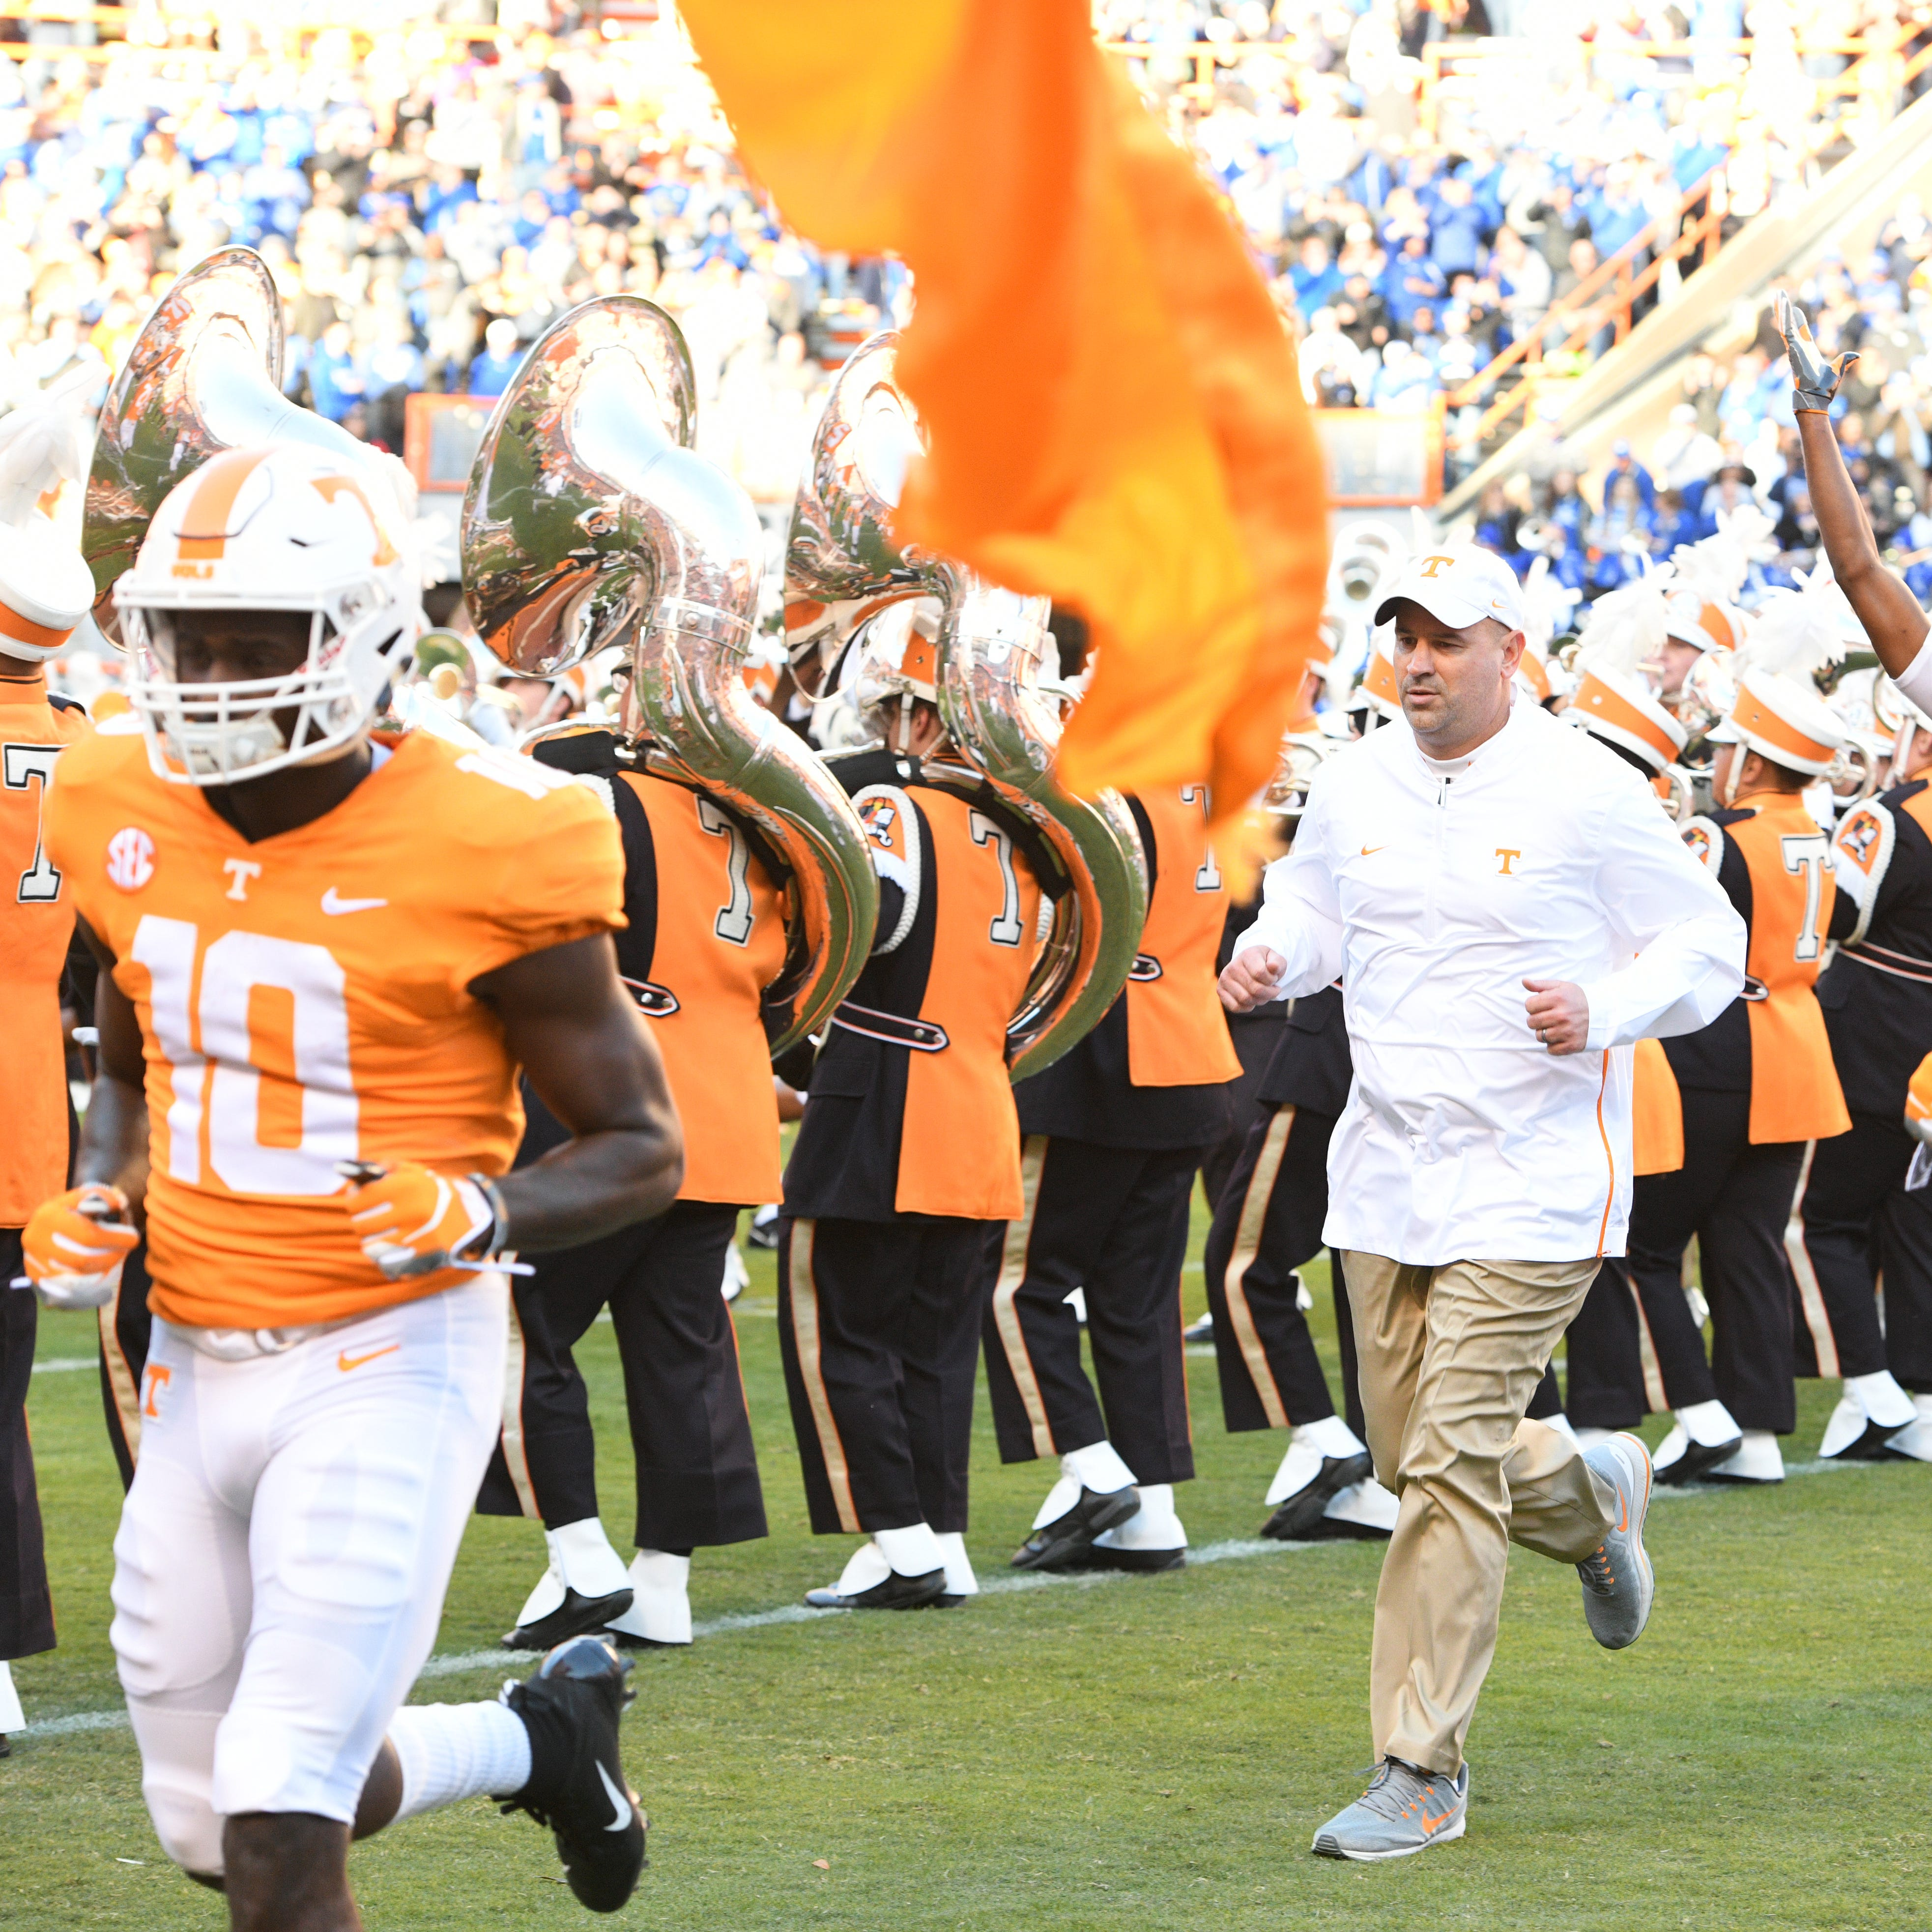 UT Vols: How Tennessee football coach Jeremy Pruitt handles recruiting visits on game day